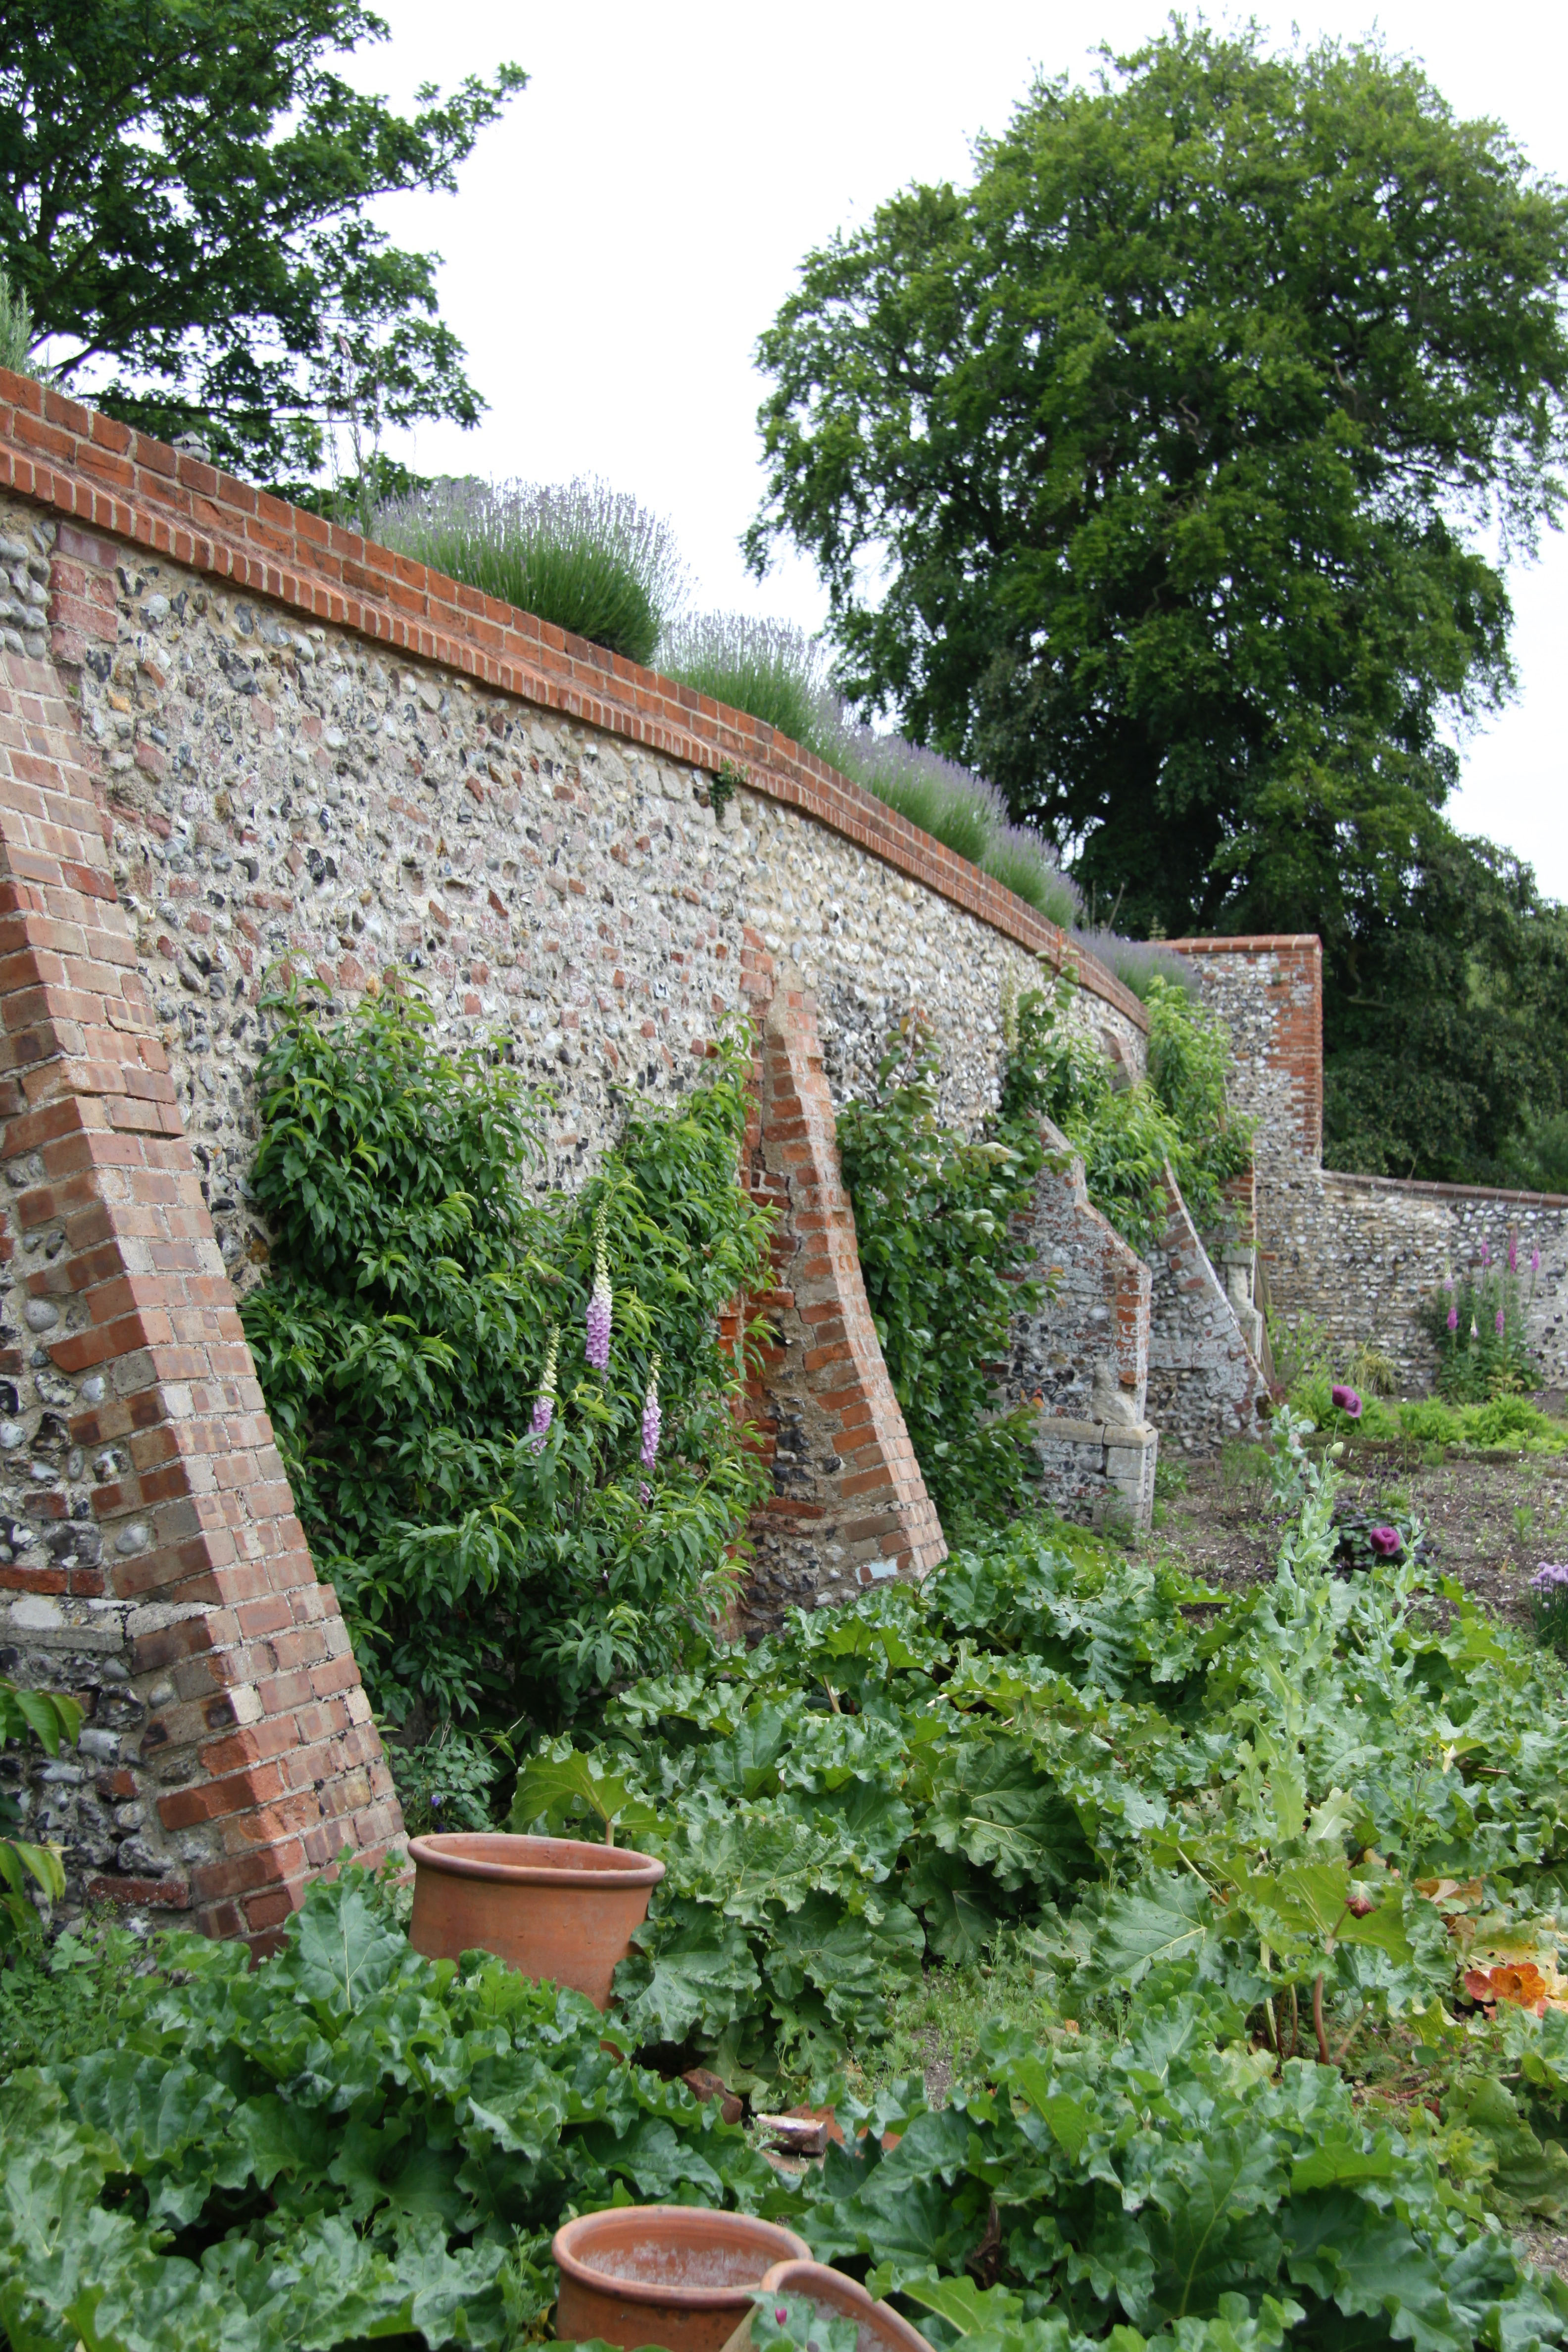 Piers For Strength On Old Garden Wall Marian Boswall Landscape